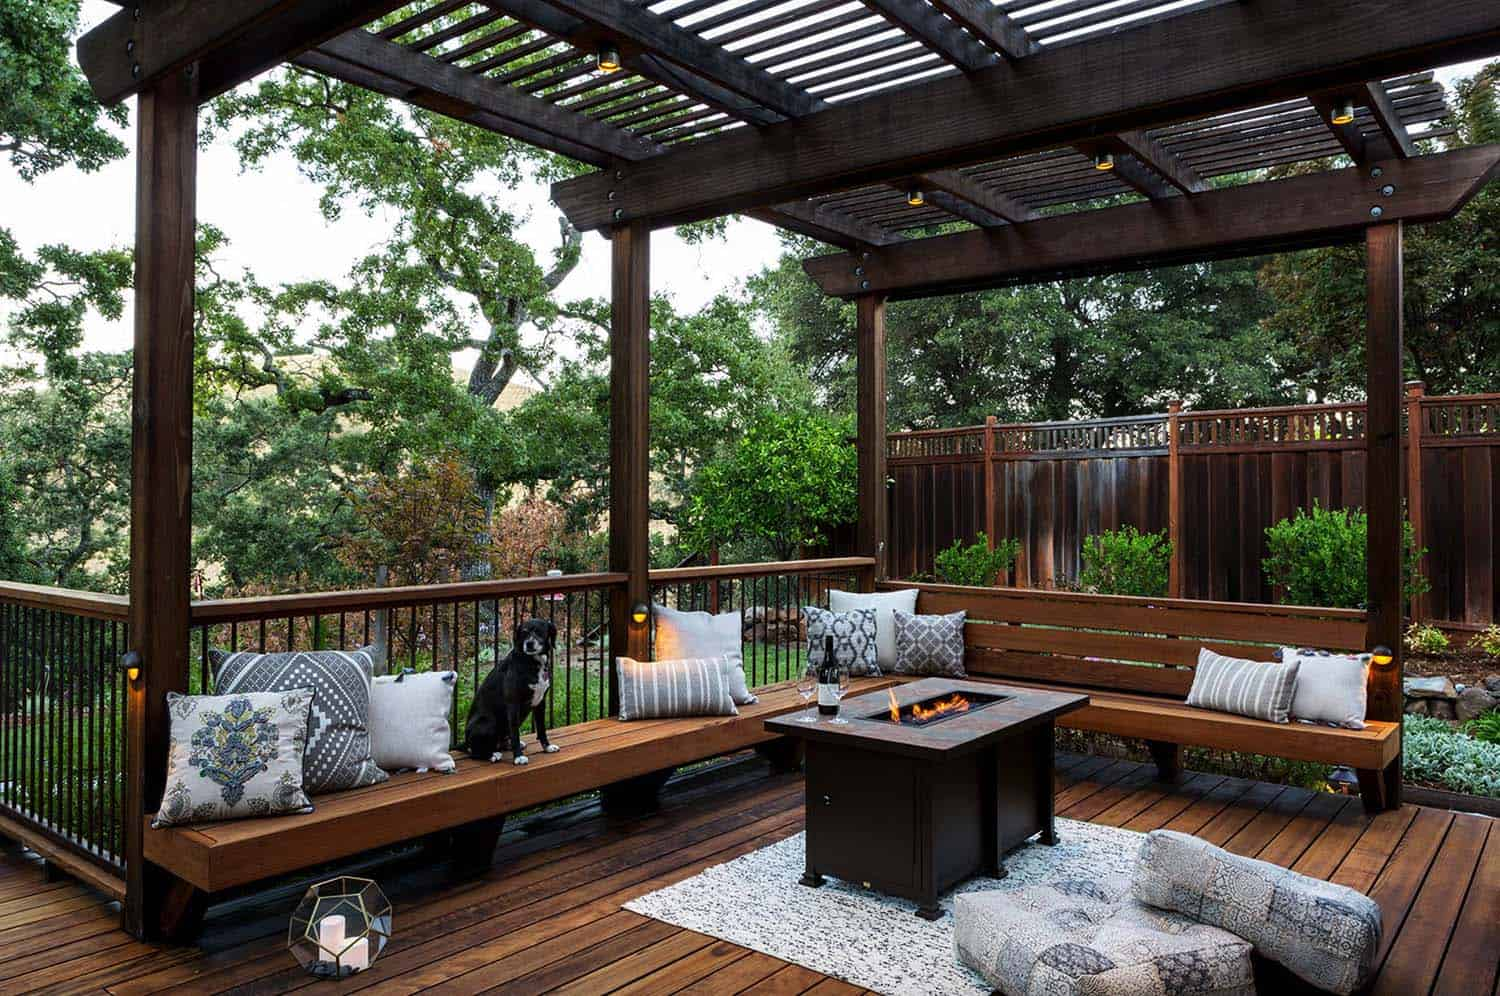 33 Fabulous Ideas For Creating Beautiful Outdoor Living Spaces on Backyard Outdoor Living Spaces id=81138